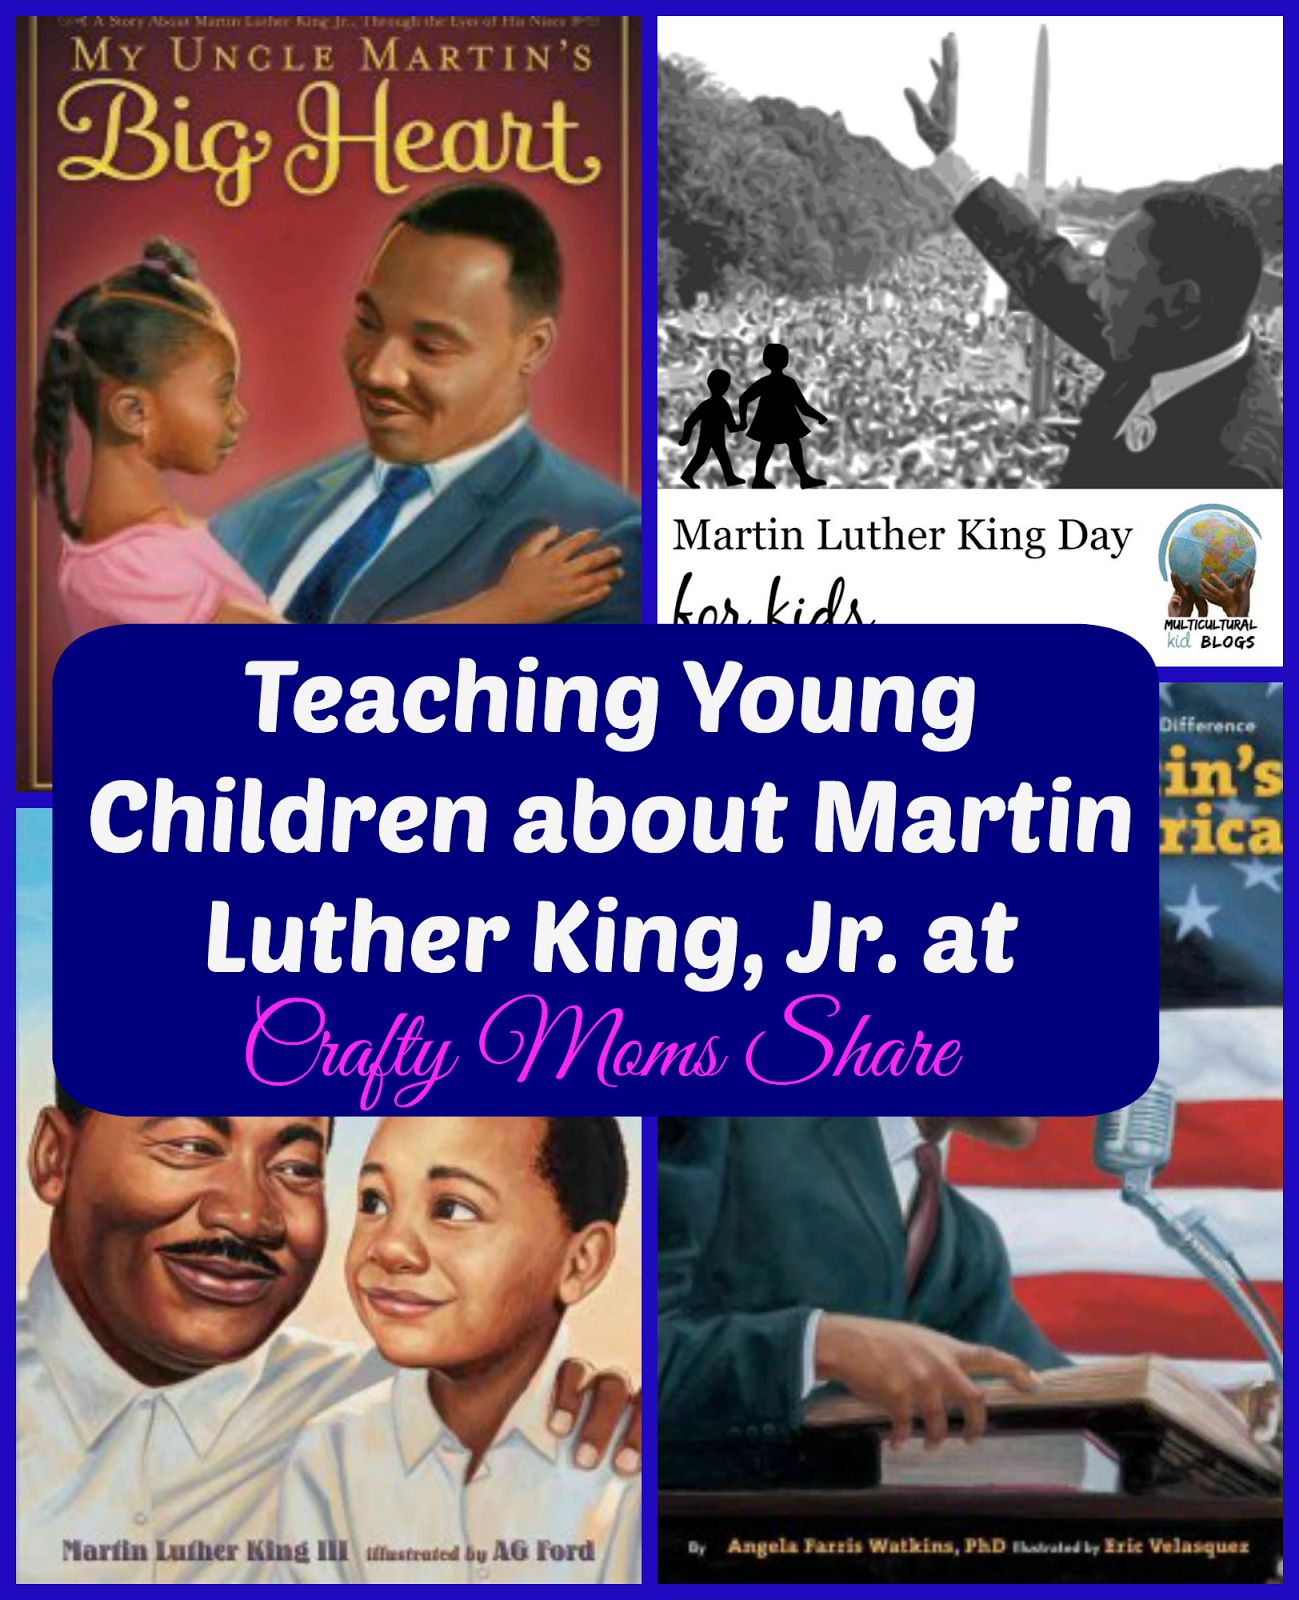 Crafty Moms Share Teaching Young Children About Martin